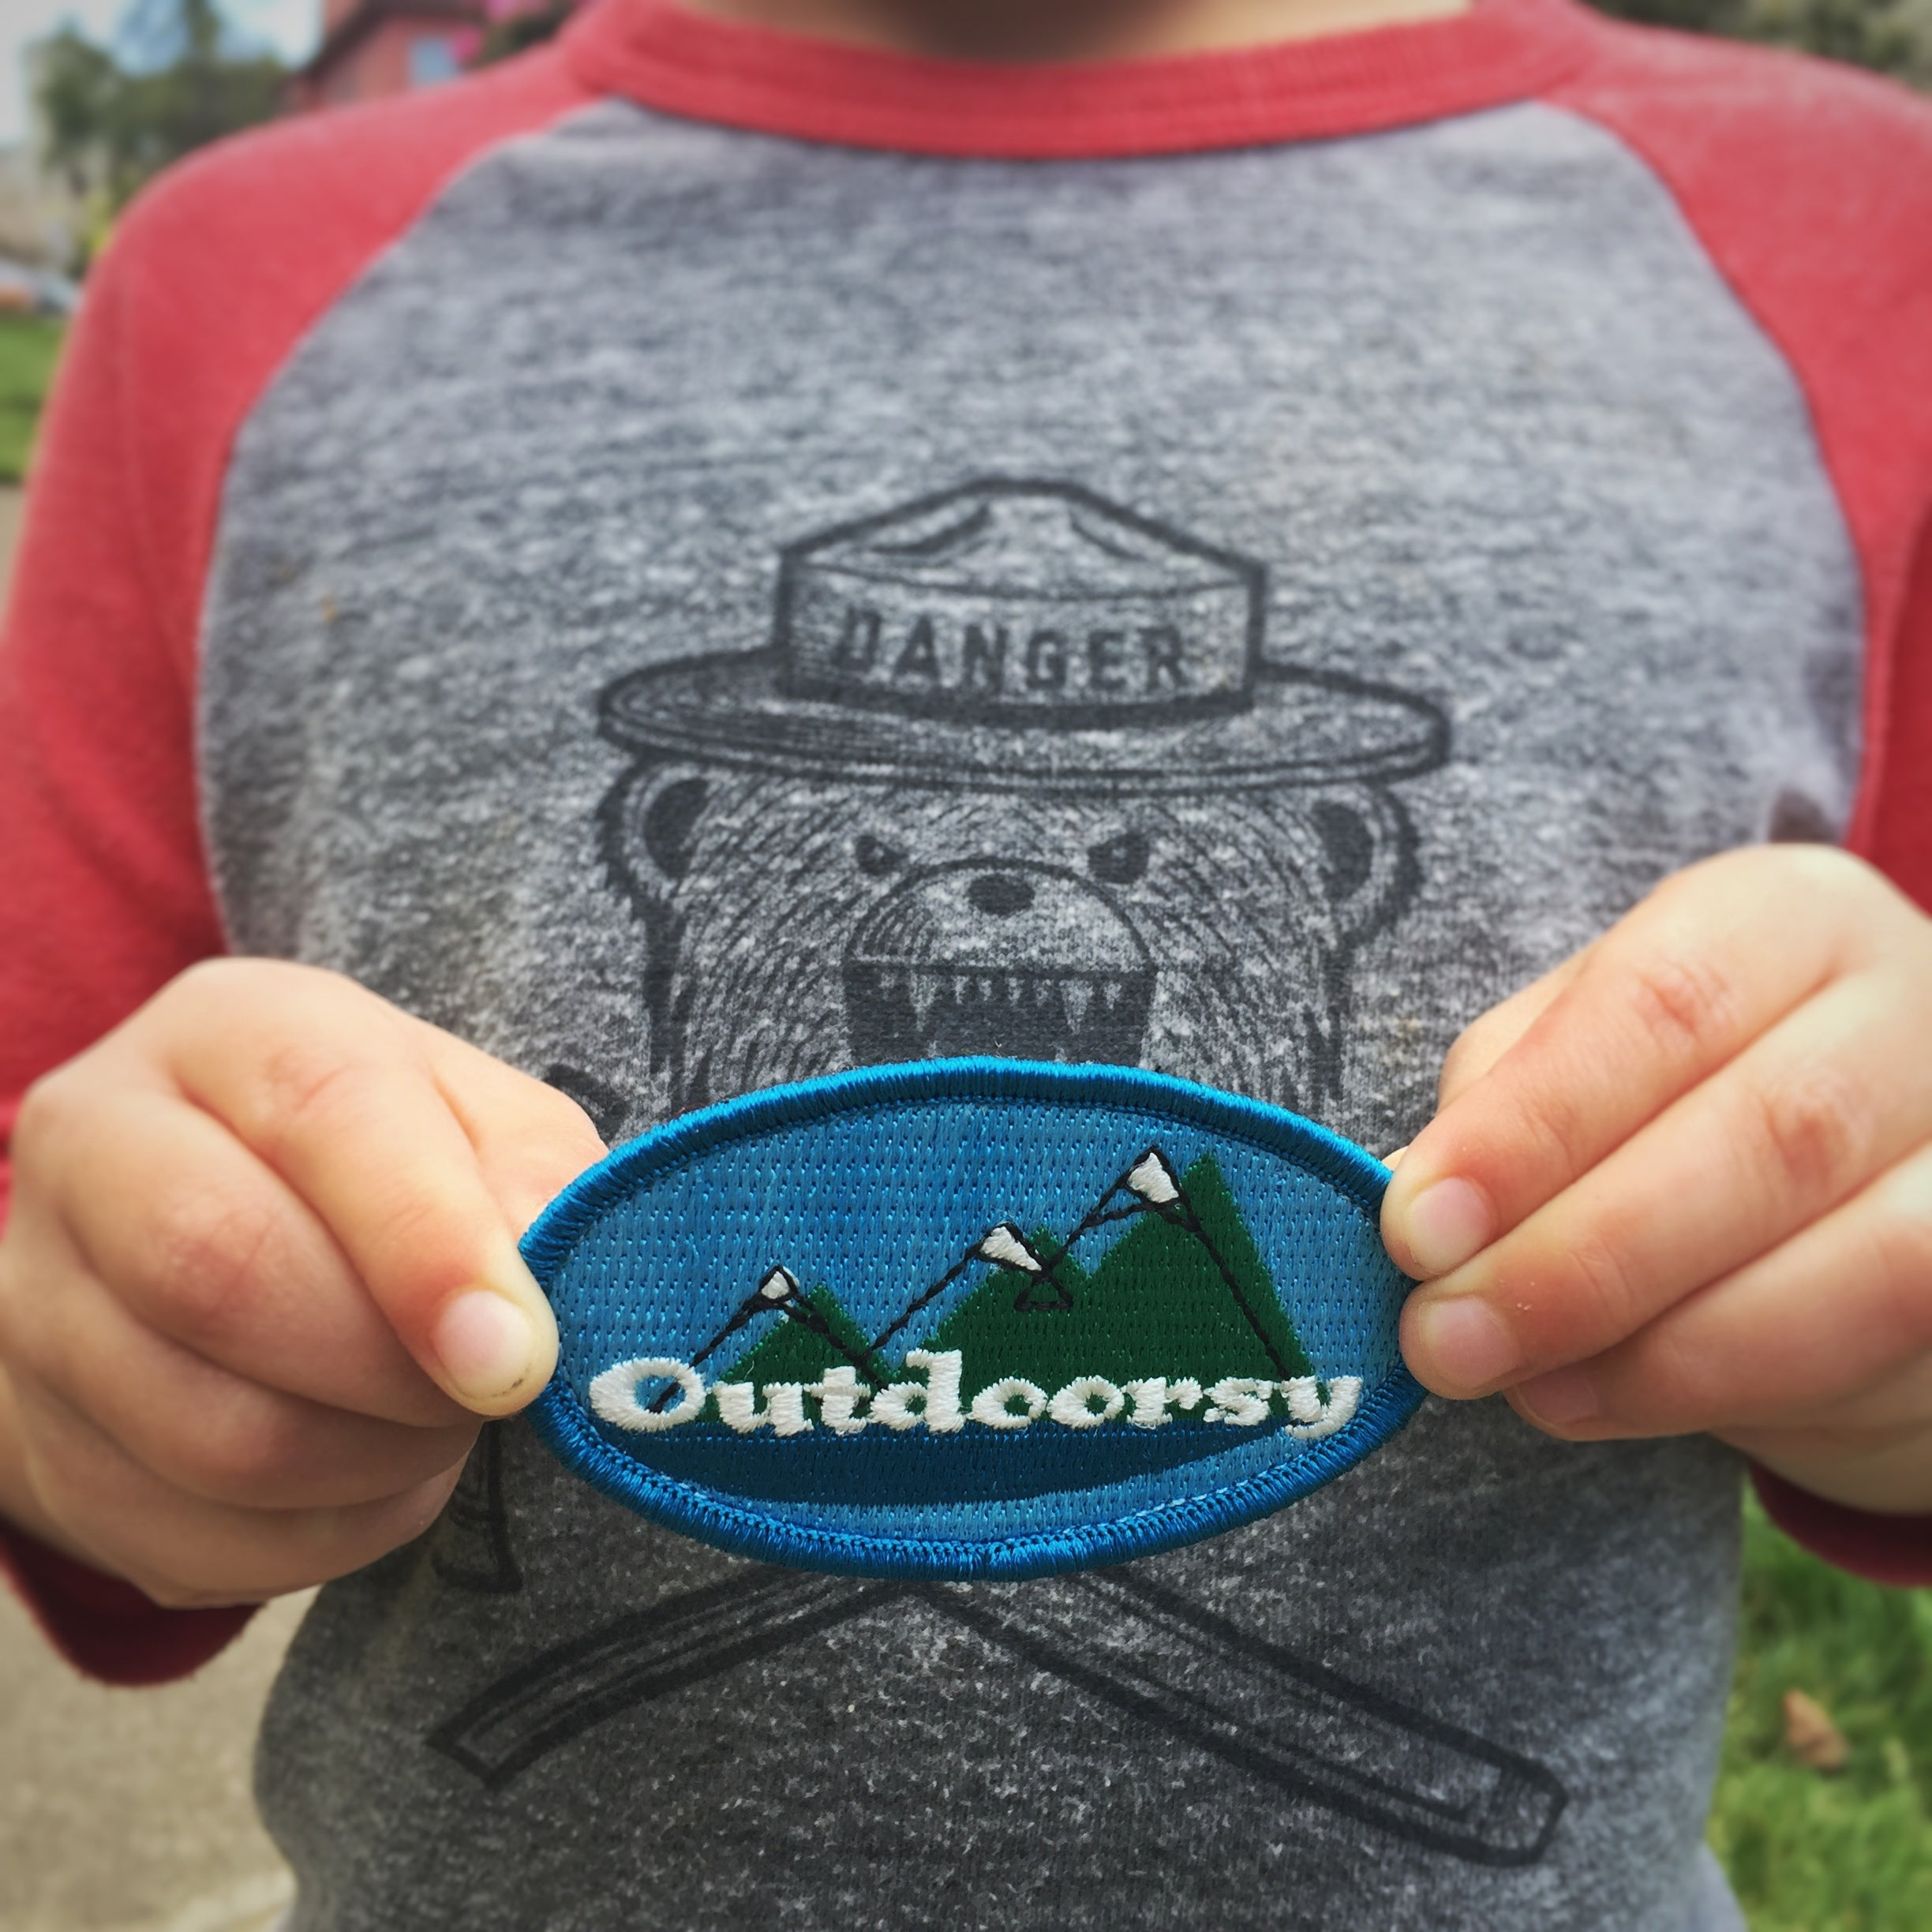 Outdoorsy Badge